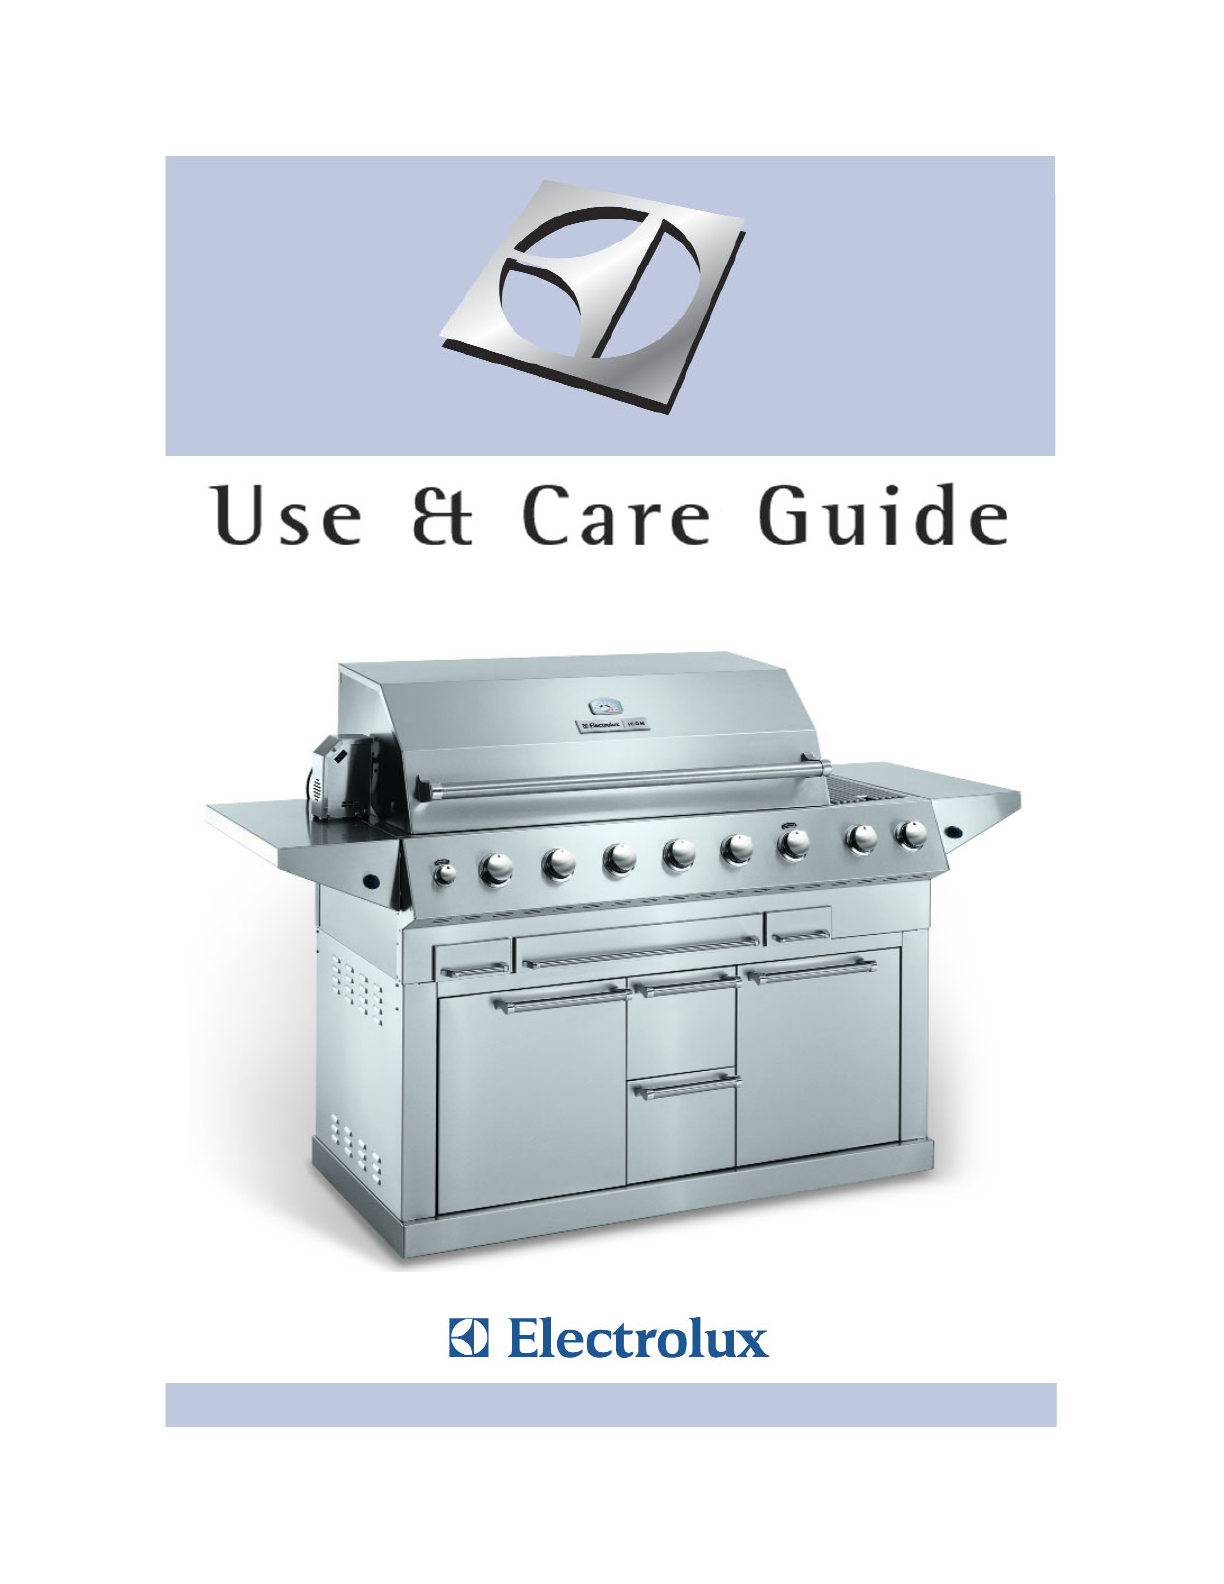 electrolux gas grill 57 stainless steel gas grill user guide rh outdoorcooking manualsonline com Electrolux Gas Grills Outdoor Electrolux Gas Grills Outdoor